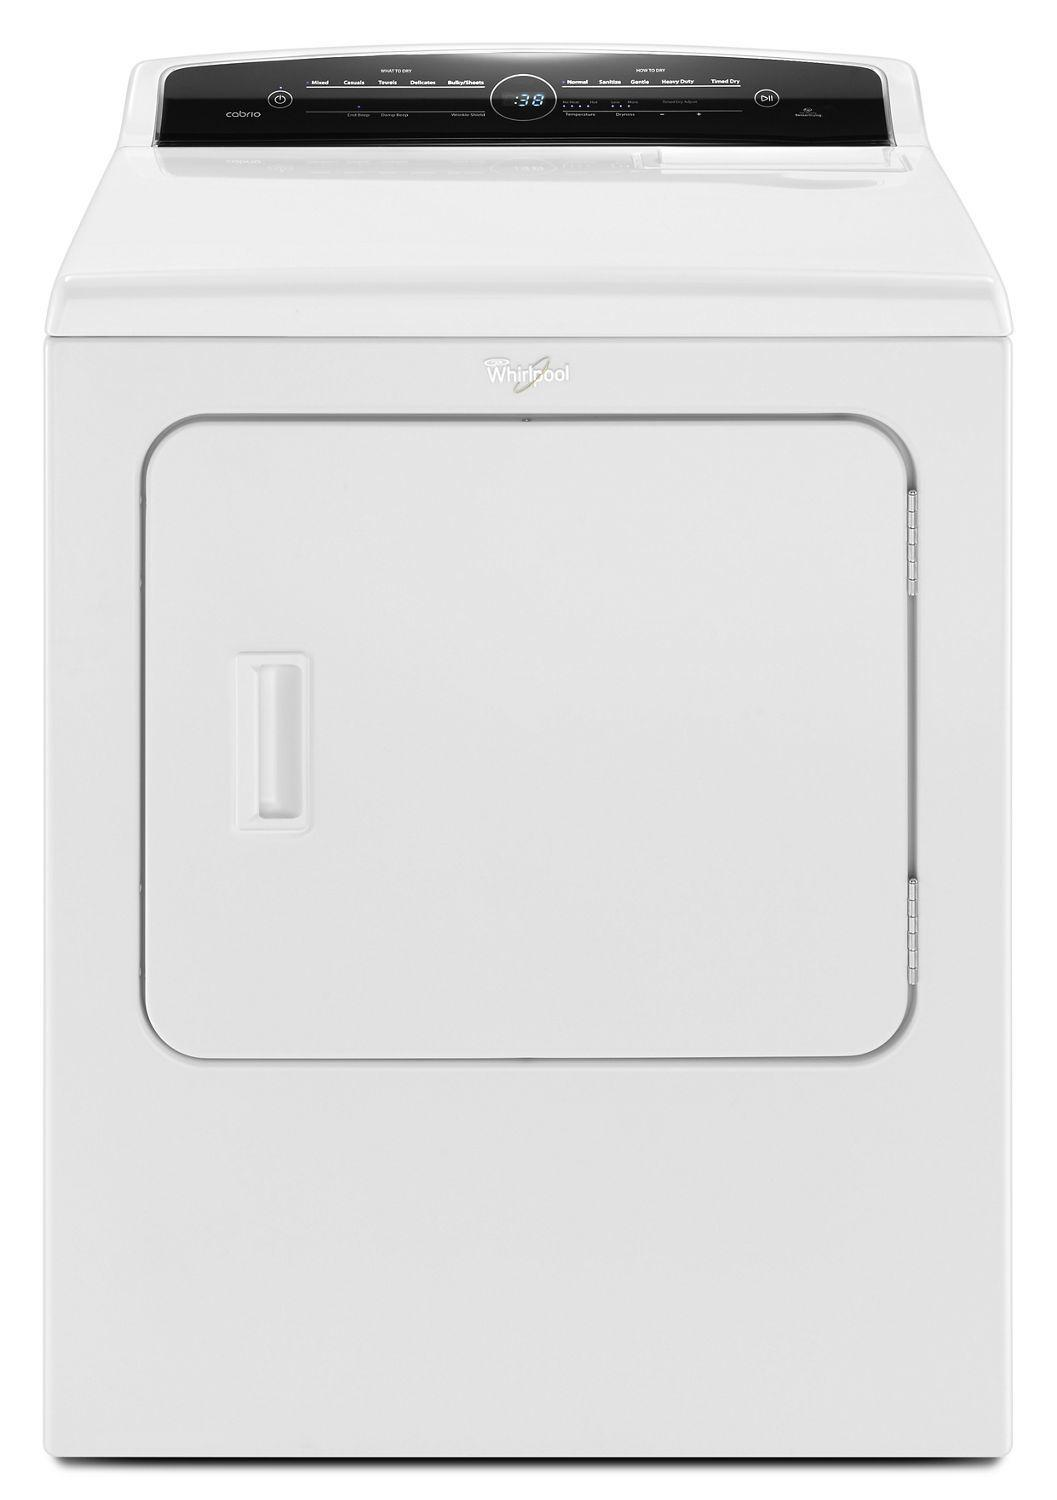 Whirlpool7.0 Cu.Ft Top Load He Gas Dryer With Advanced Moisture Sensing, Intuitive Touch Controls White